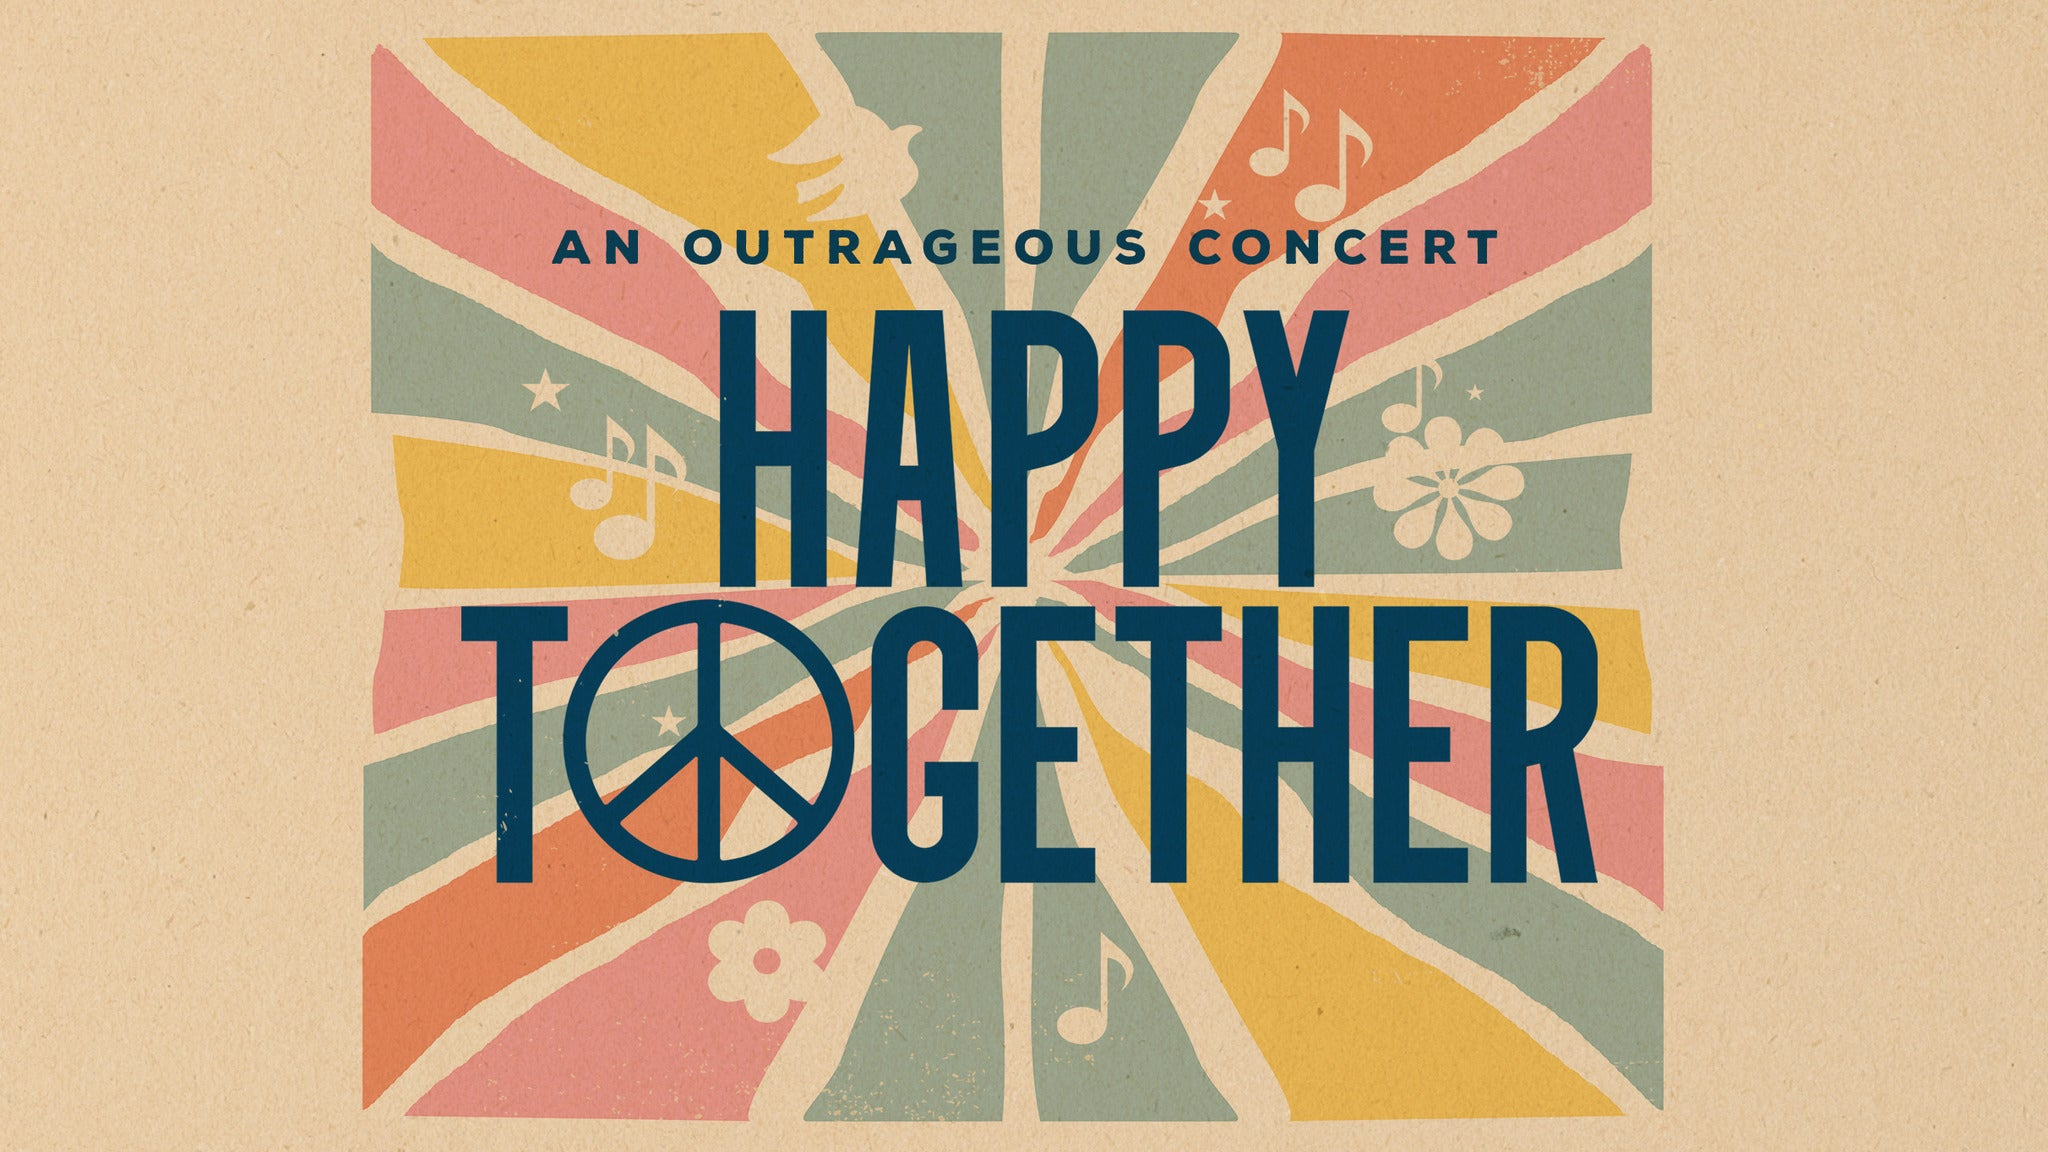 Happy Together Tour 2021 presale password for concert tickets in Rochester, NY (Kodak Center)